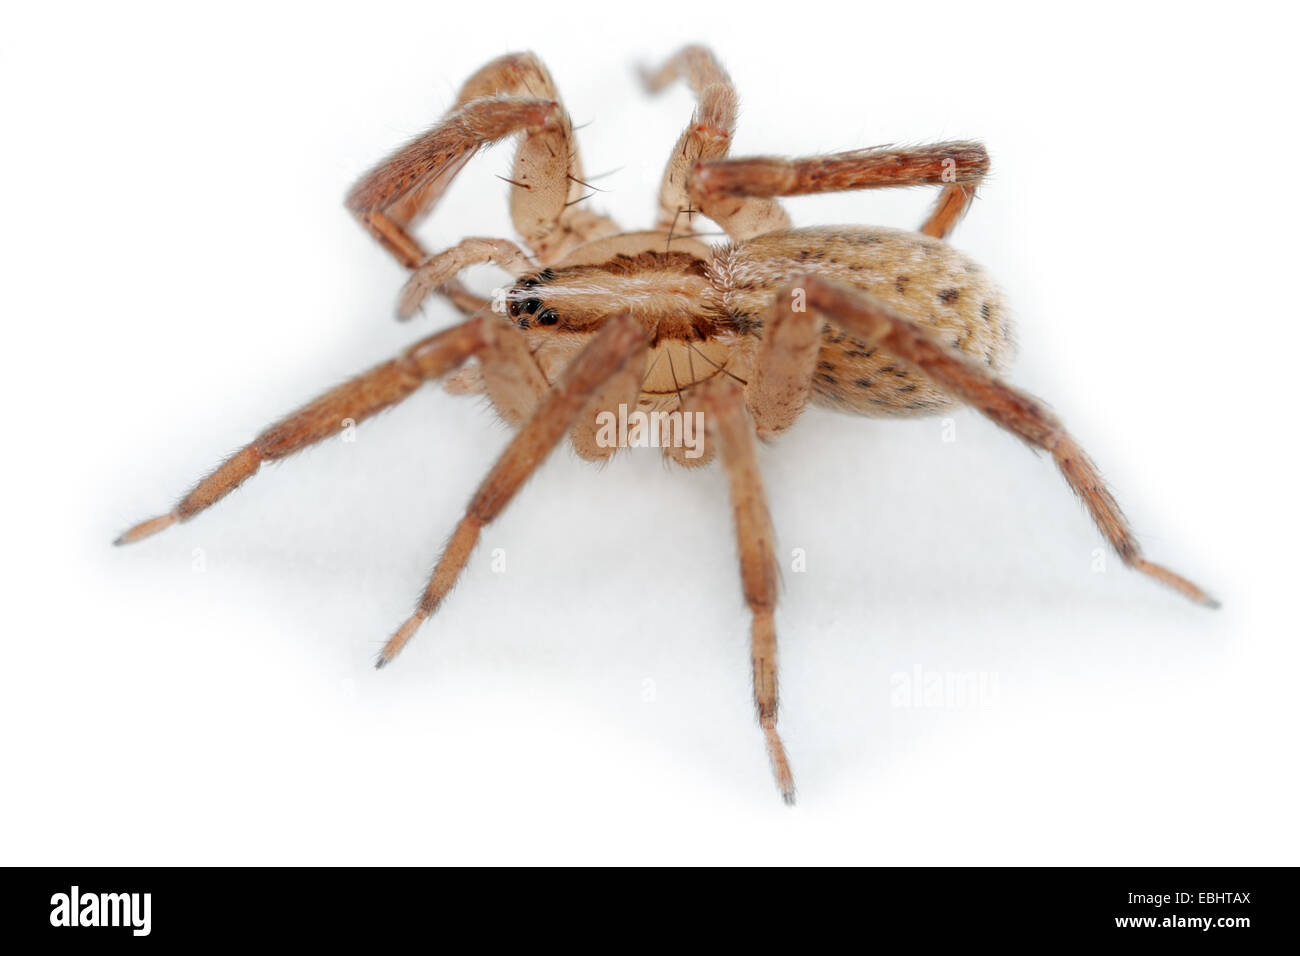 A female (Zora spinimana) spider on white background. The spider is part of the family Zoridae, Wandering spiders - Stock Image